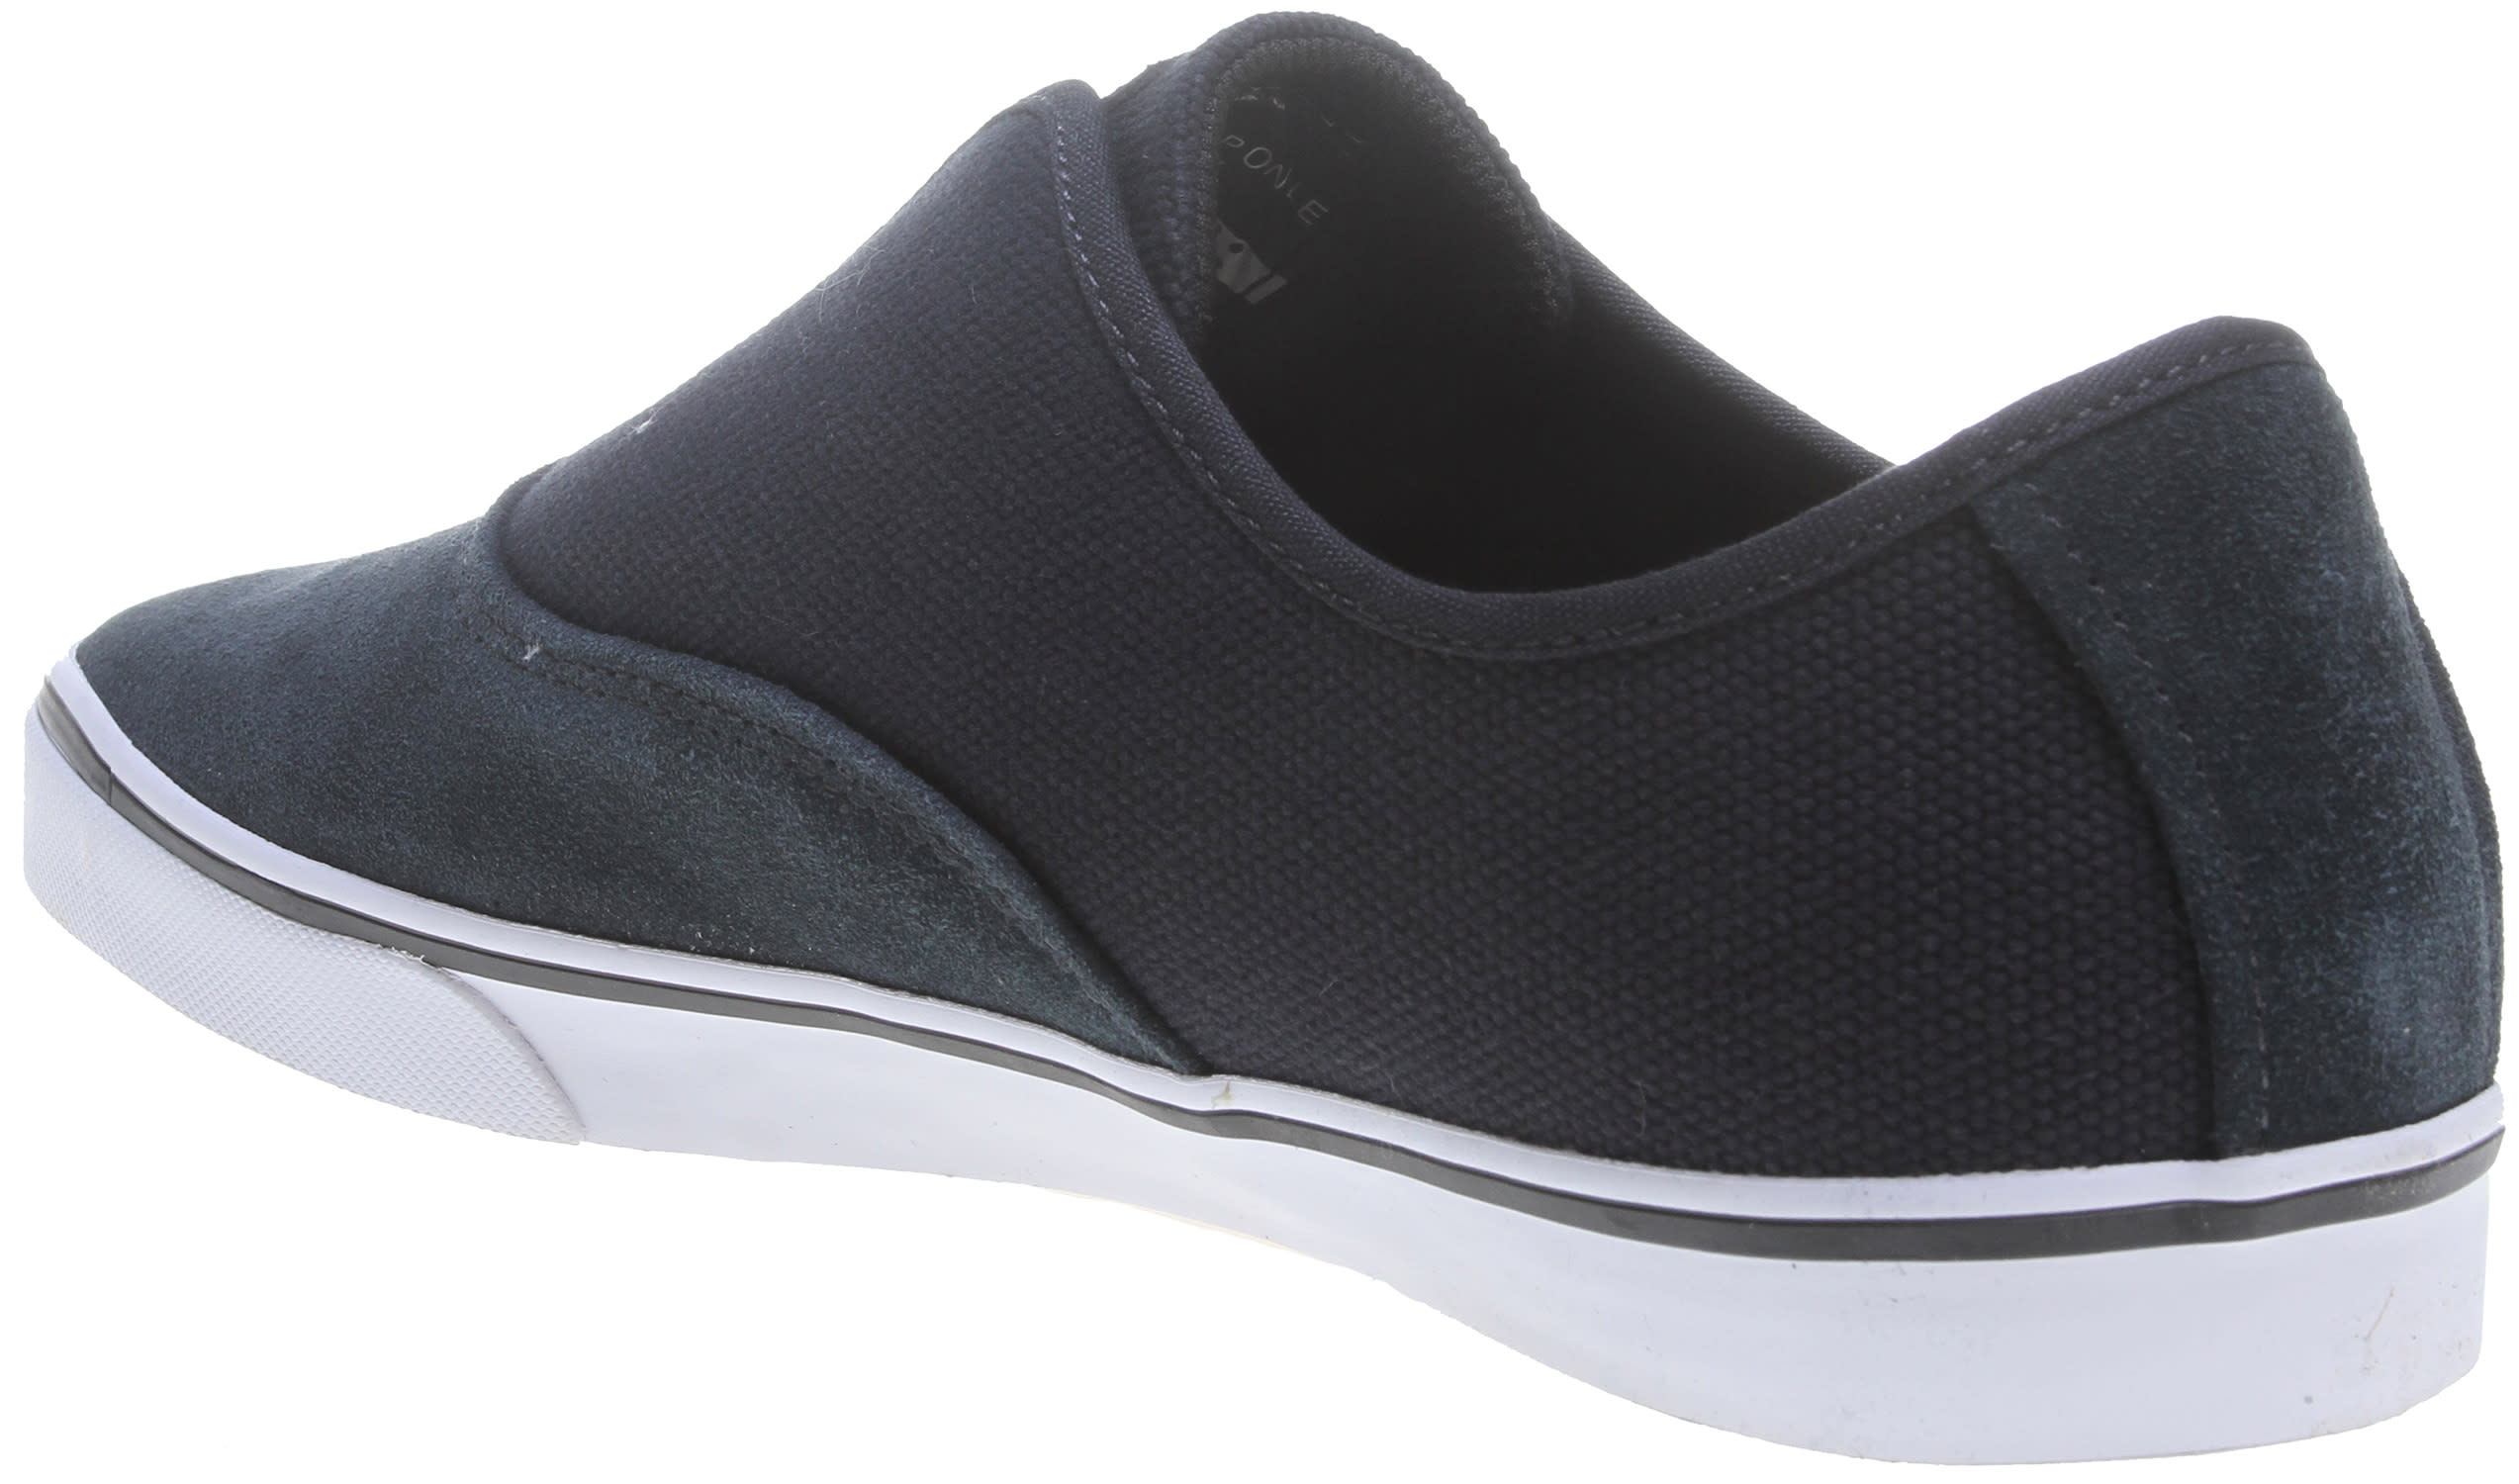 5b9c24a3ae Gravis - Dylan Slip-On - Shoes - Impericon.com Worldwide